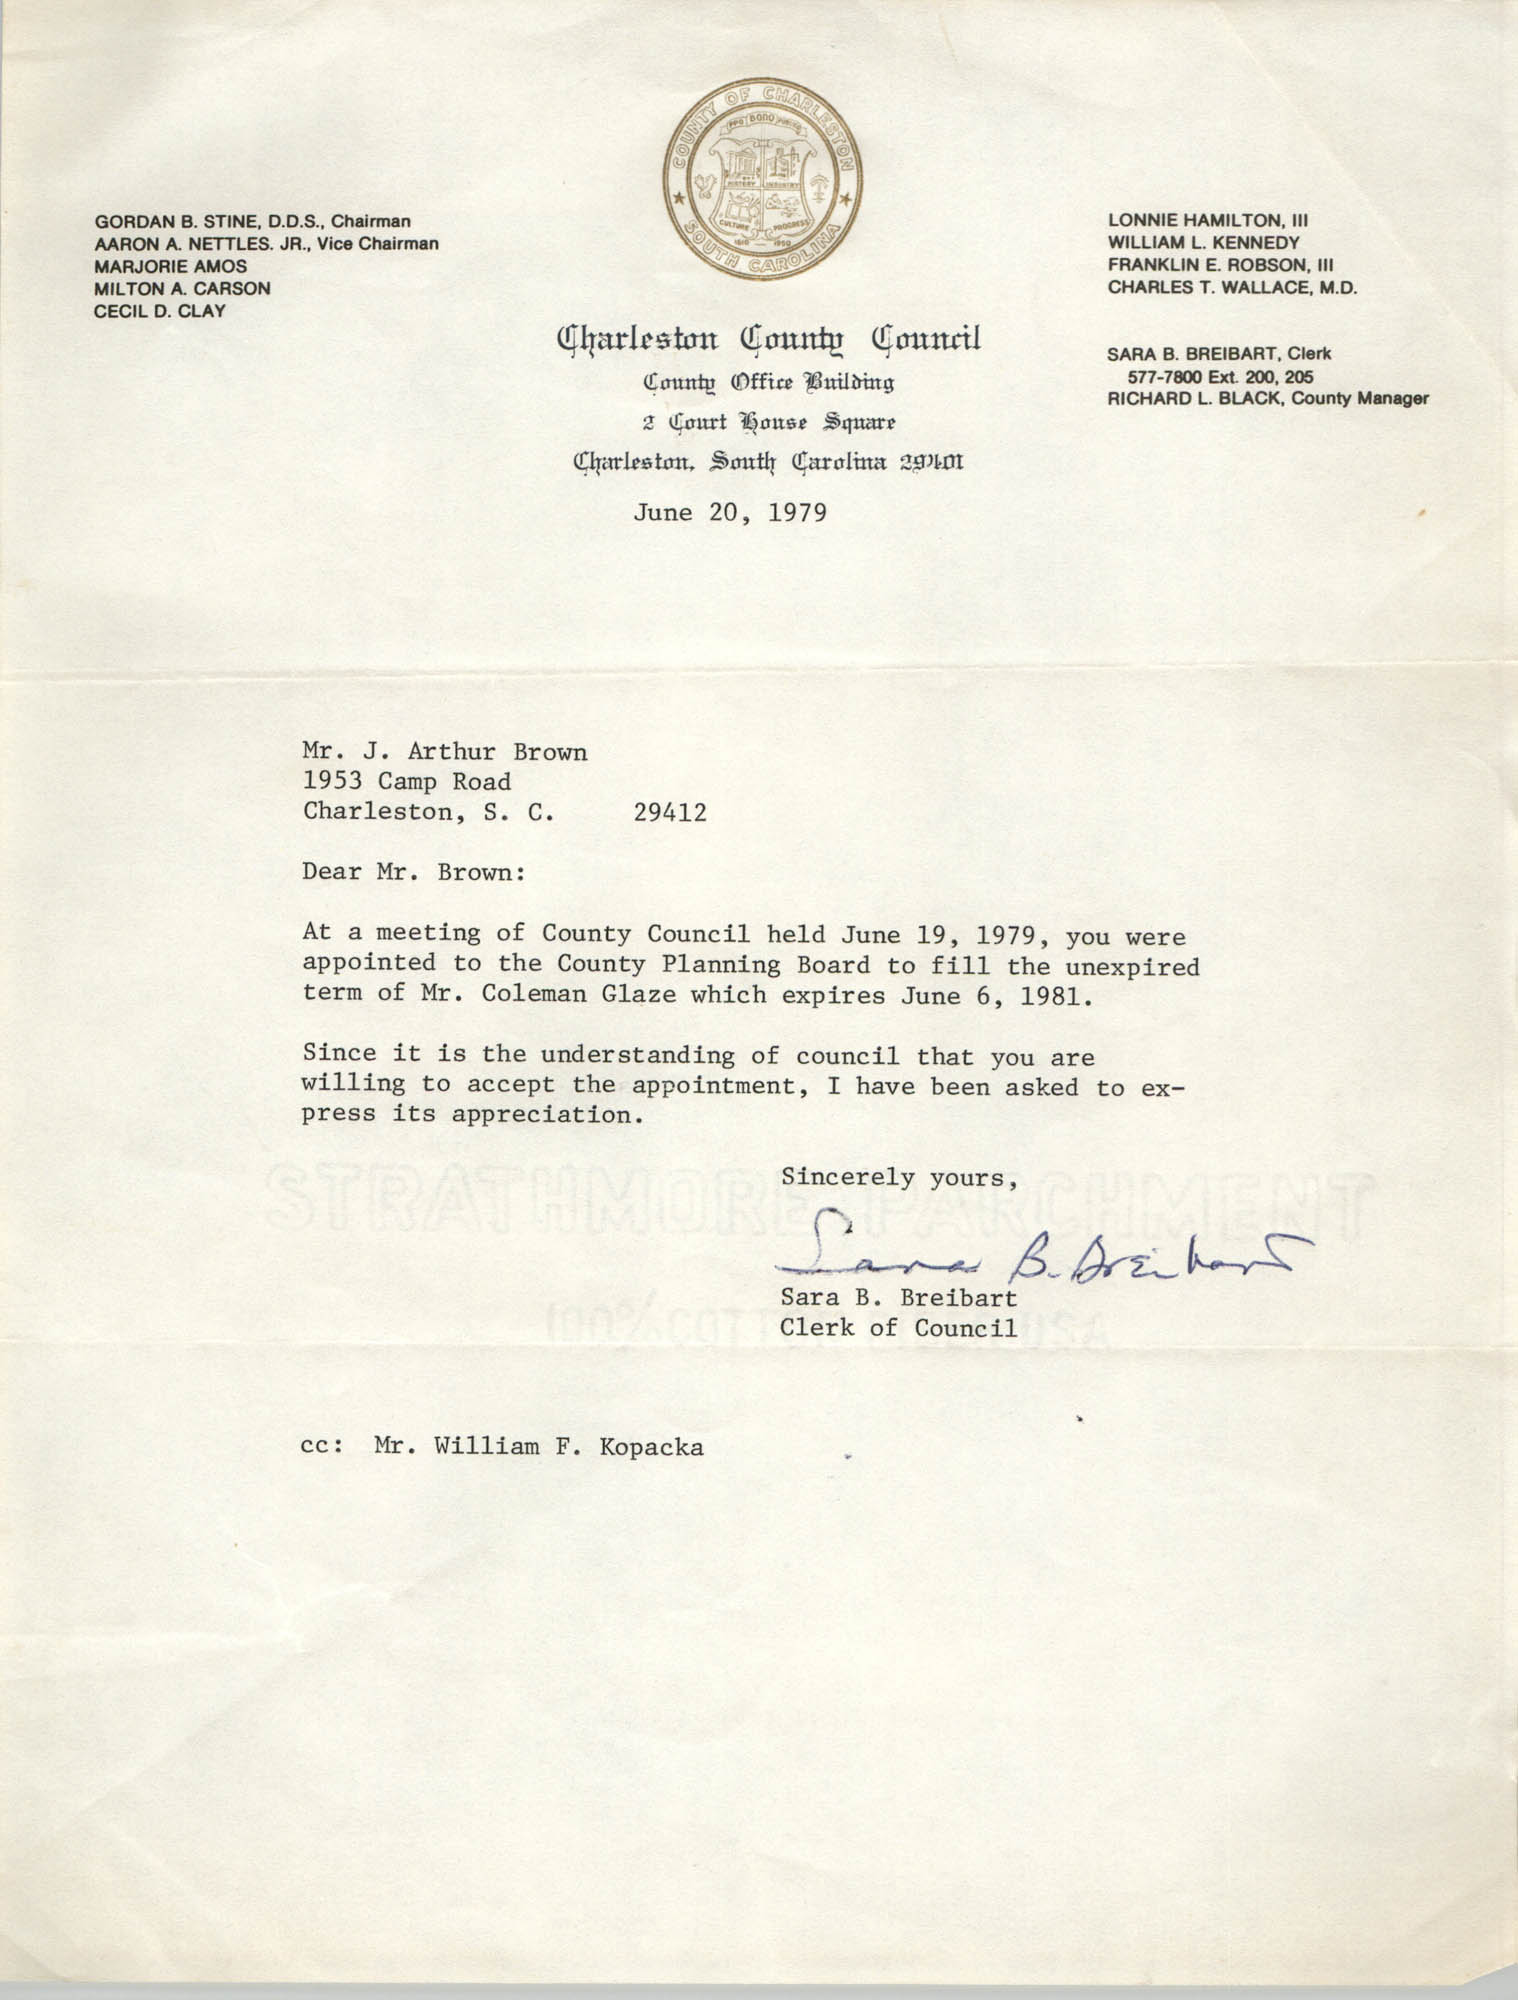 Letter from Sara B. Breibart to J. Arthur Brown, June 20, 1979